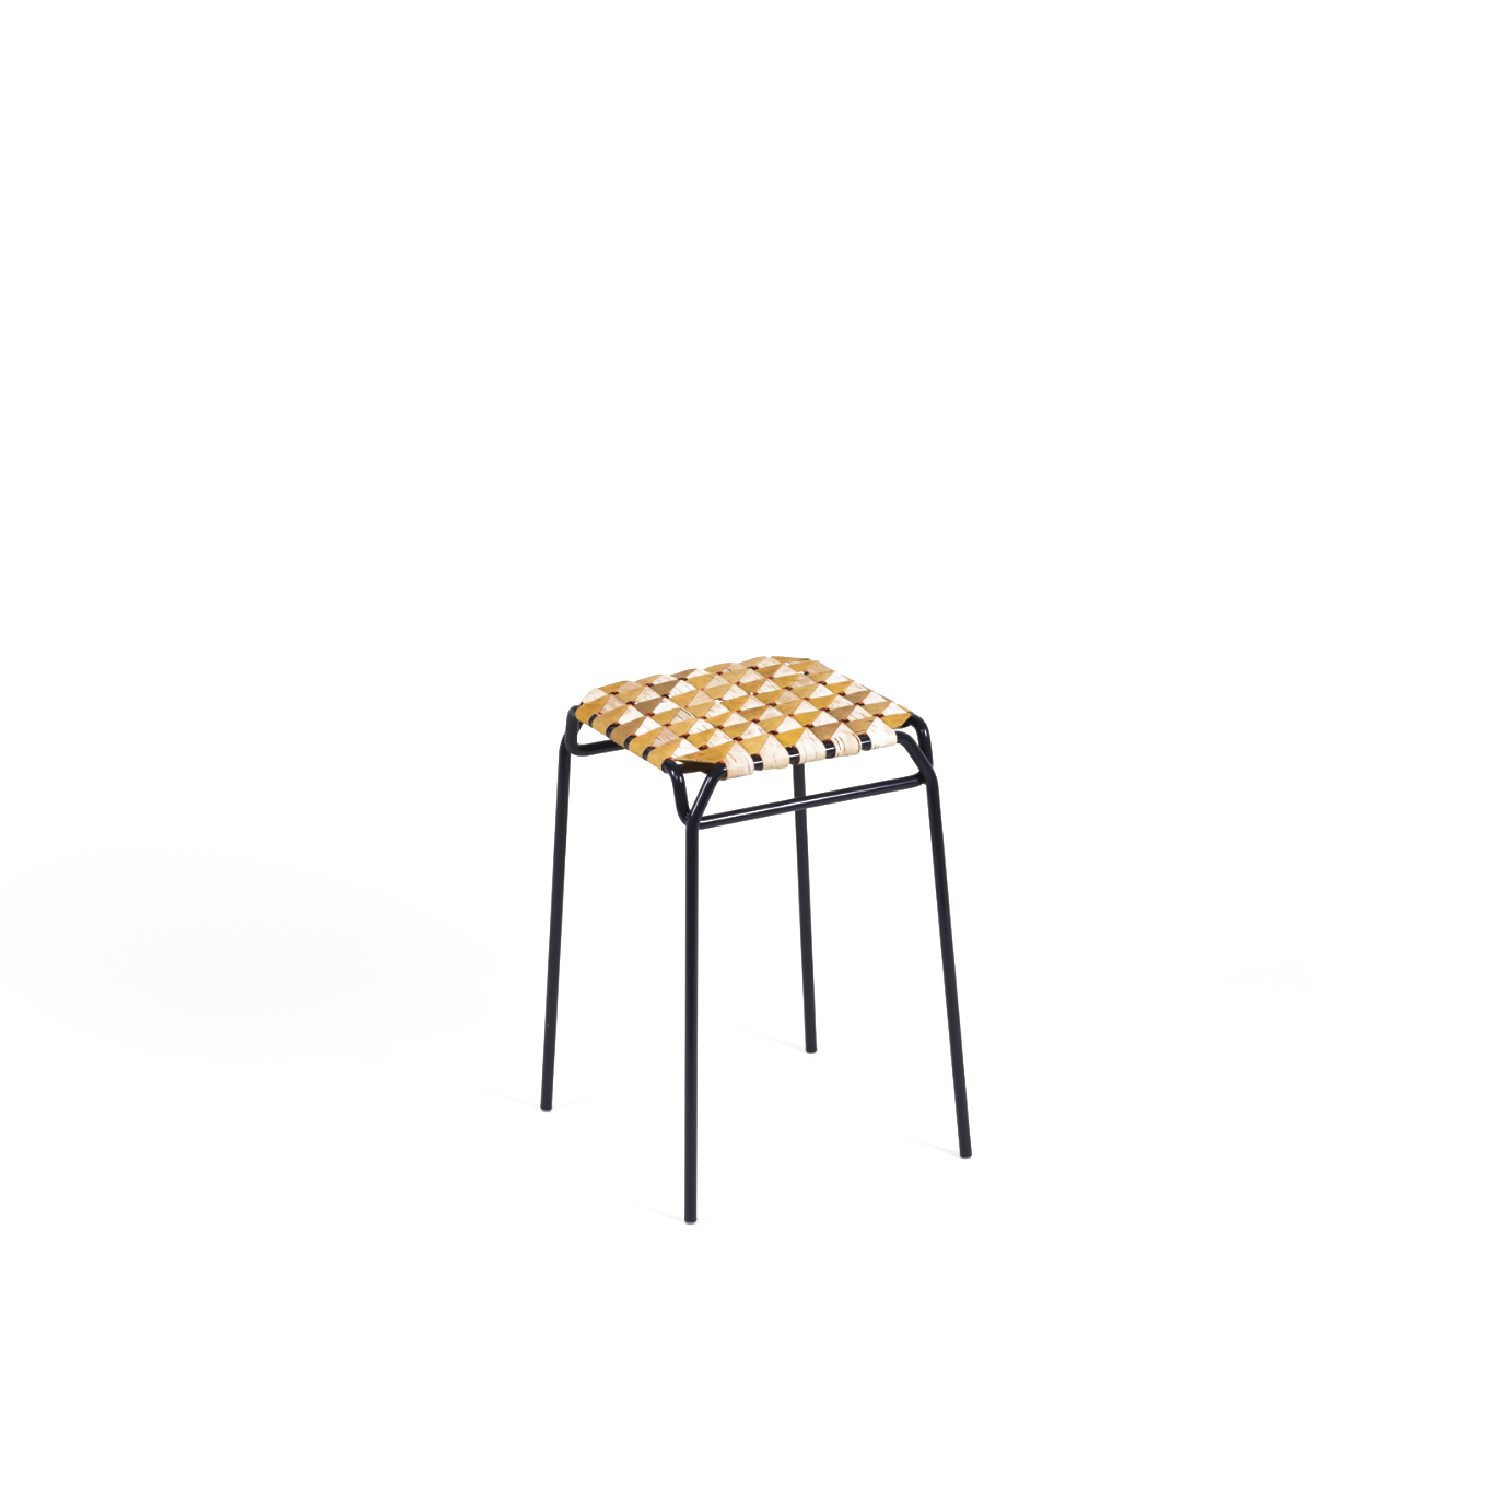 Taburet Stool - Taburet is a stool with a threedimensional seat made of birch bark strips, sewn and fixed together on a steel frame. The stable, light, and elastic meshwork creates an optical illusion – appearing different from every angle – cushioning the stool in a decorative and comfortable way.  Unlike in traditional craftsmanship, we make our products from the naturally velvety back of the birch bark. This is a modern adaptation of conventional processing and is used extensively in the design of the stool. We deliberately chose the lighter inner layers of the bark to celebrate the graphic grain and colouring of each piece. Every object is thus one of a kind, representing a unique product of nature, which is emphasised by contrasting colour accents. High quality is ensured by elaborate craftsmanship and careful material selection.  Height 45 cm | 33 x 33 cm Birchbark, powder-coated steel | Matter of Stuff